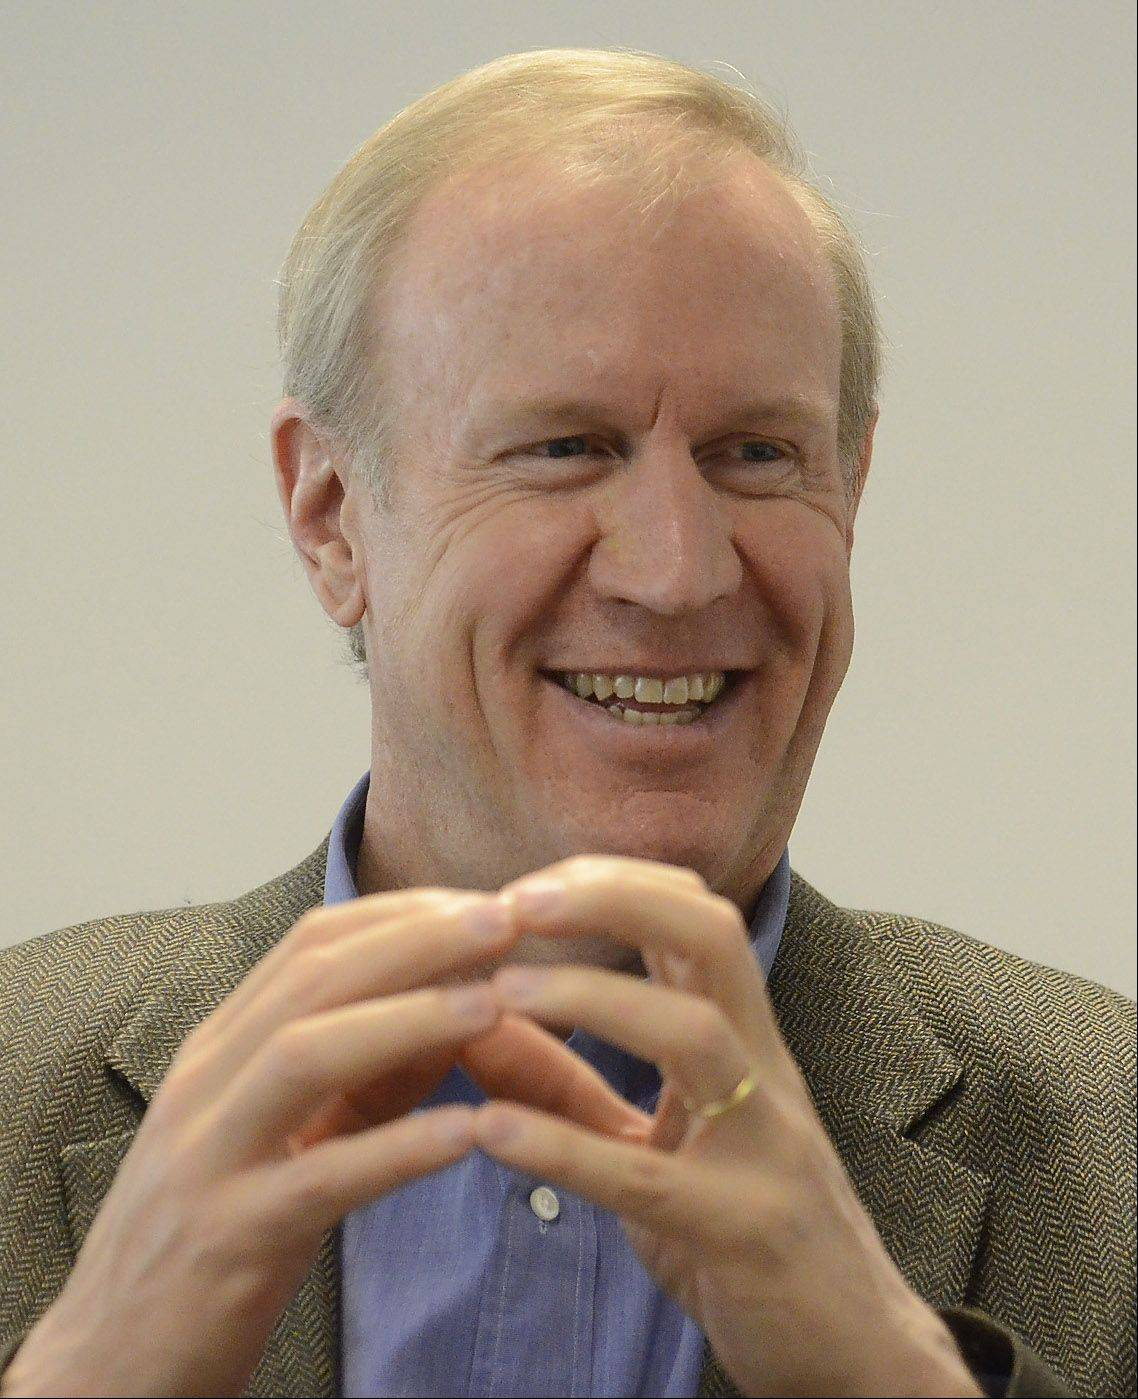 Bruce Rauner, a wealthy businessman from Winnetka, is running for governor